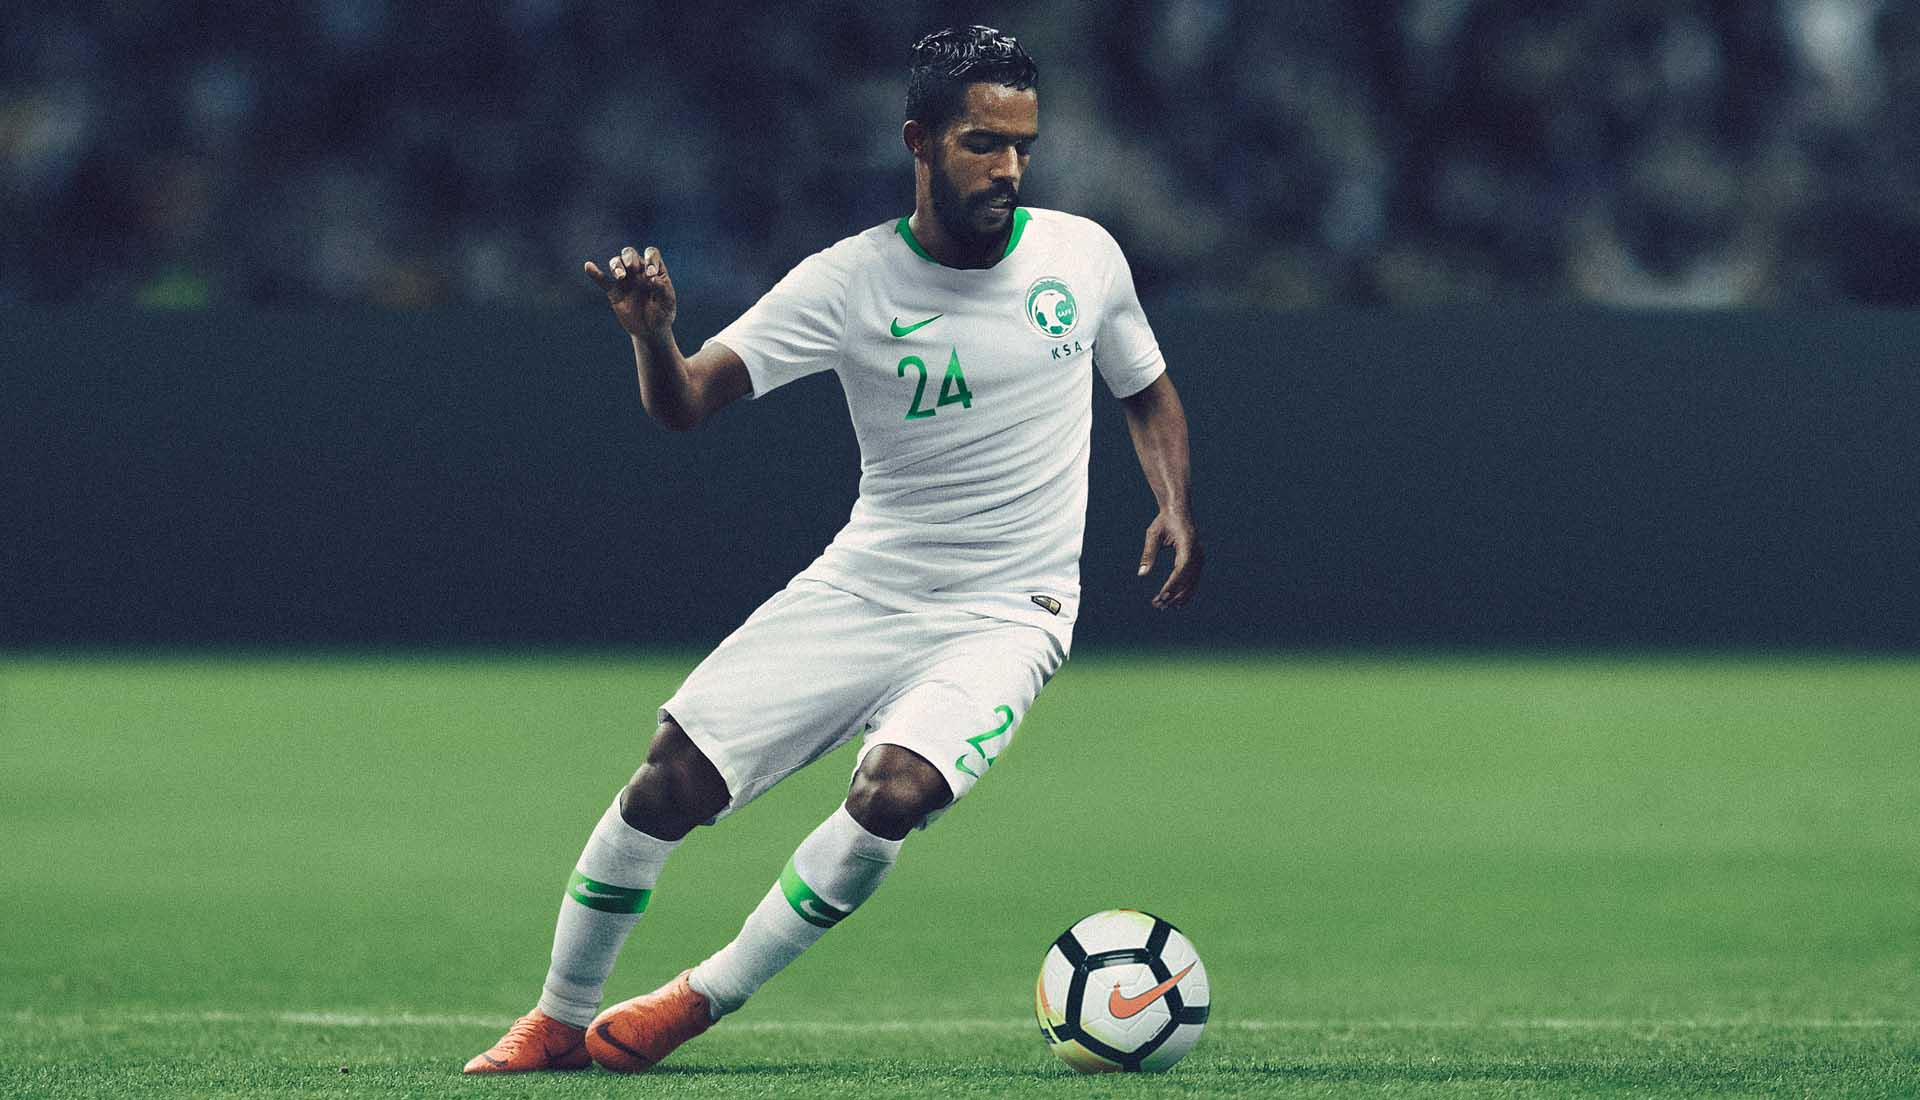 Arabie Saoudite 2018 maillot domicile coupe du monde 2018 officiel